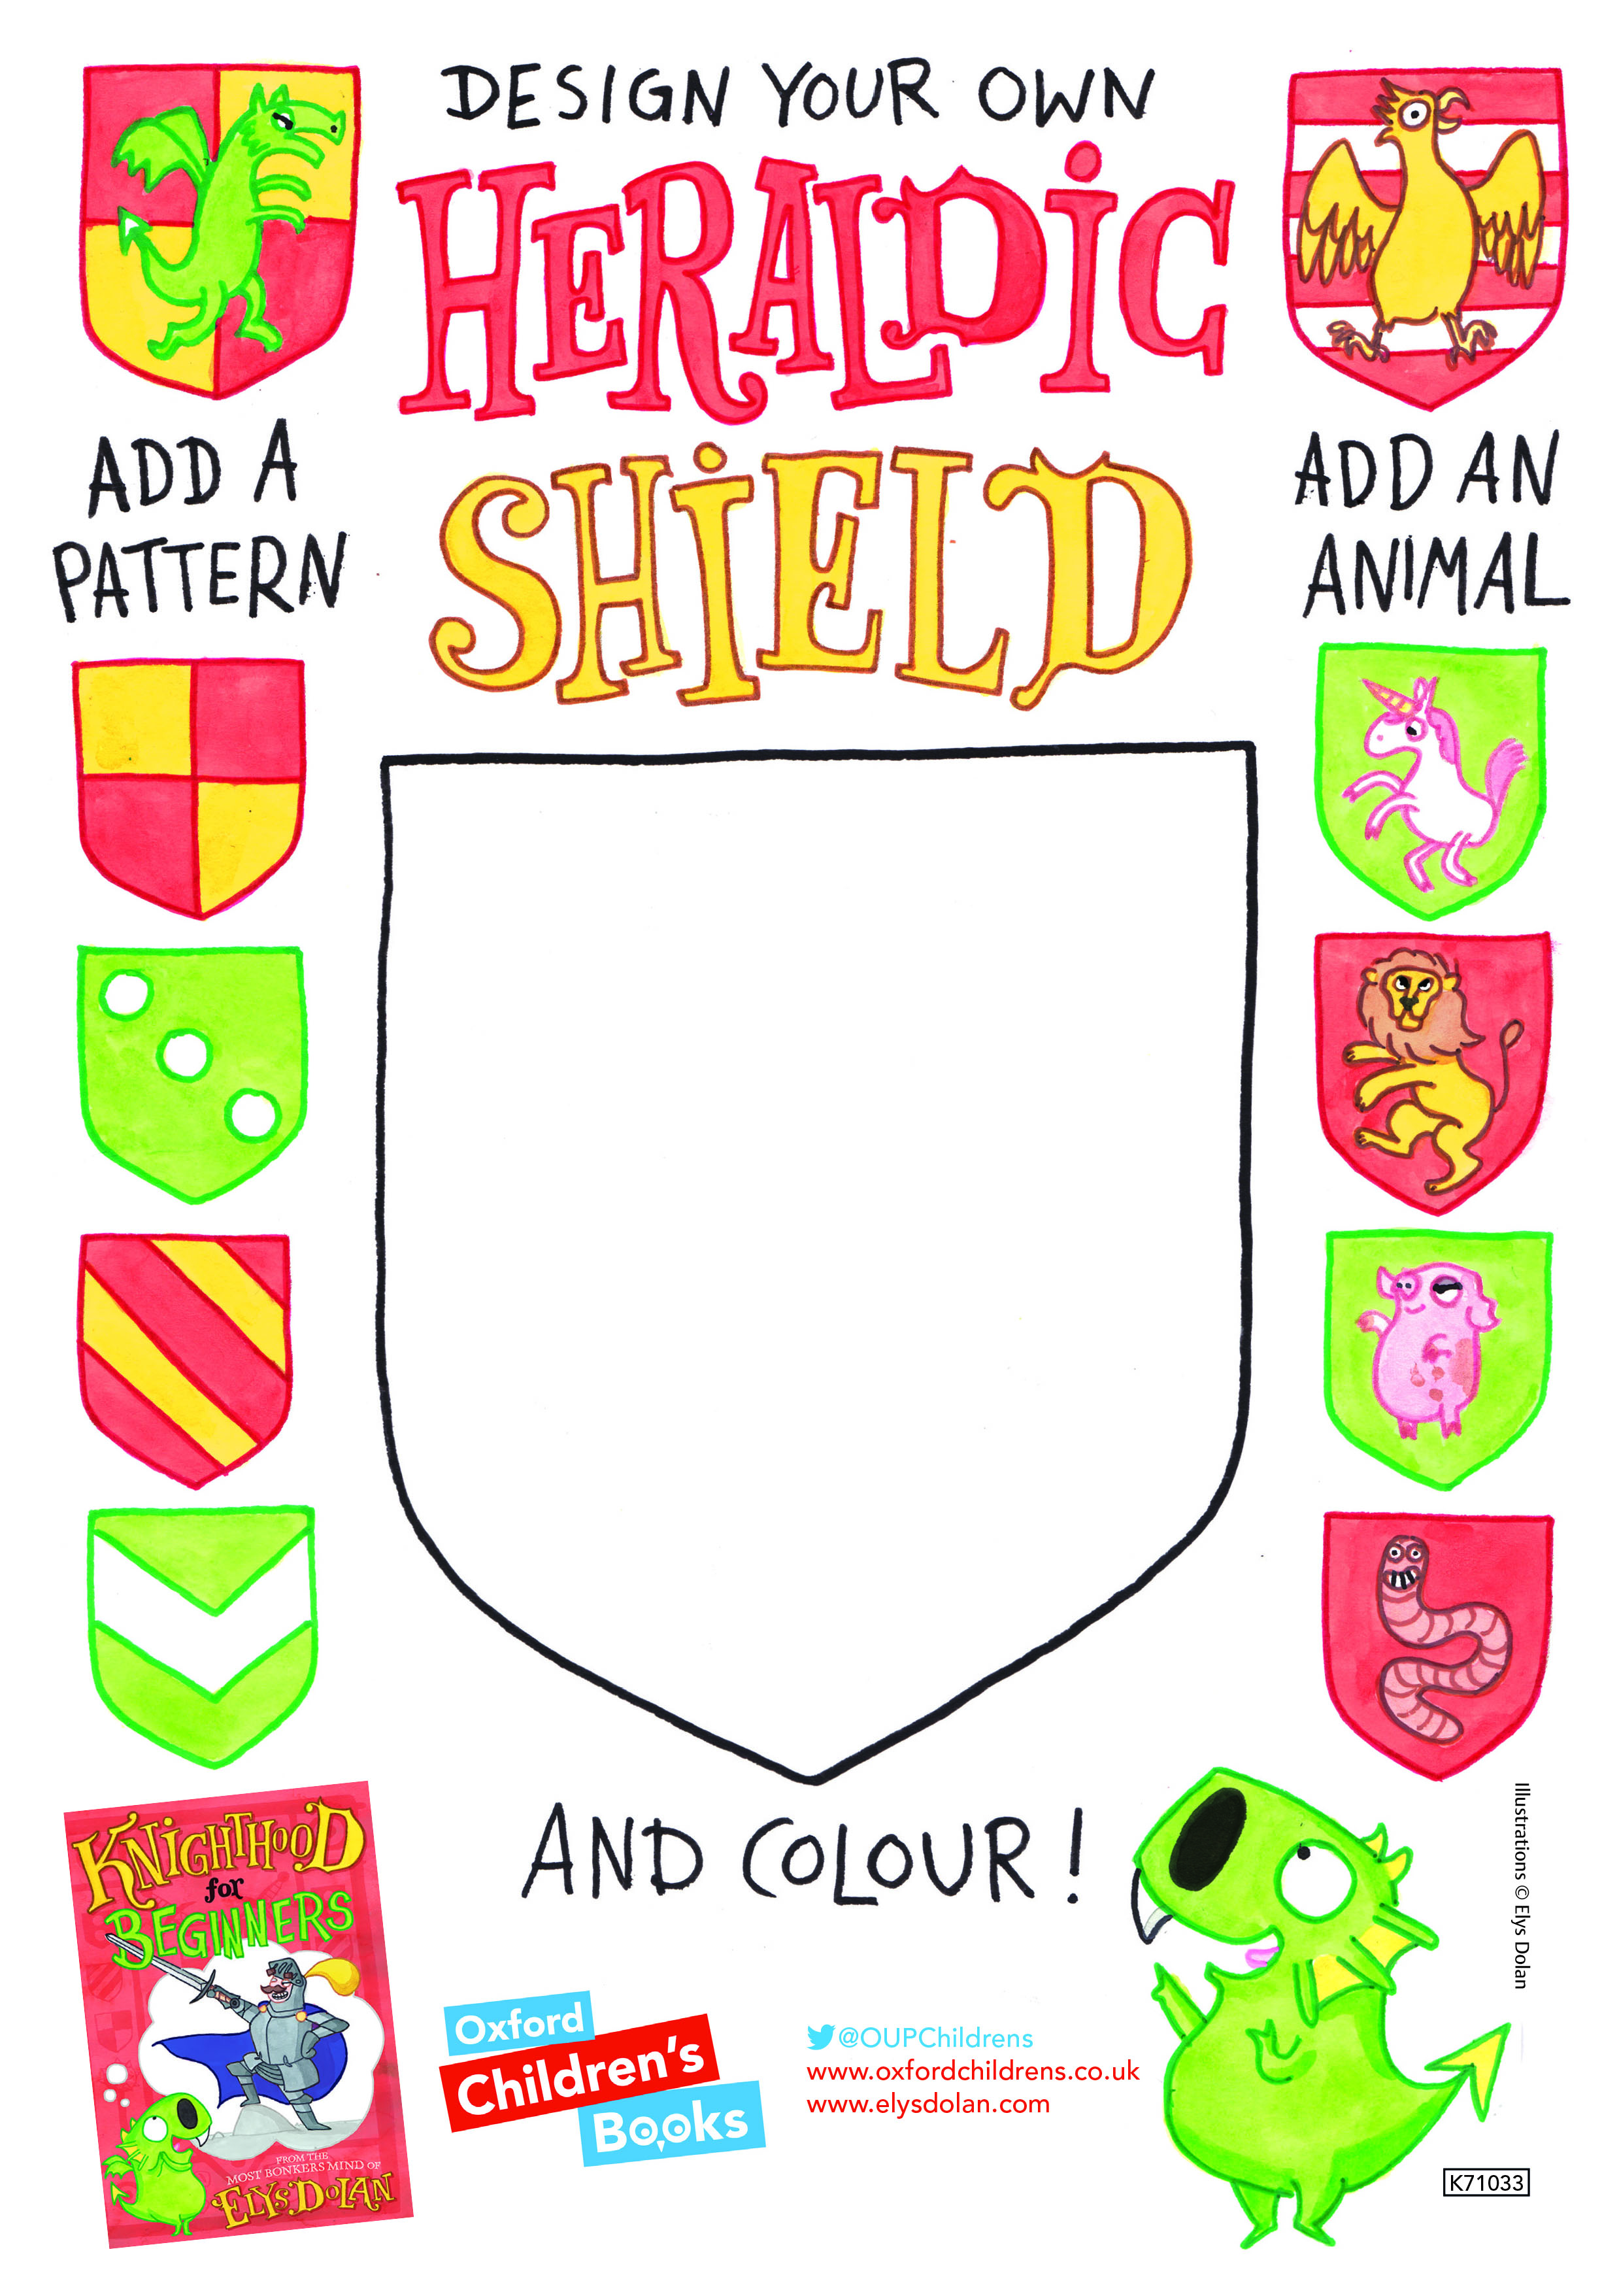 Knighthood for Beginners Design your own heraldic shield.jpg